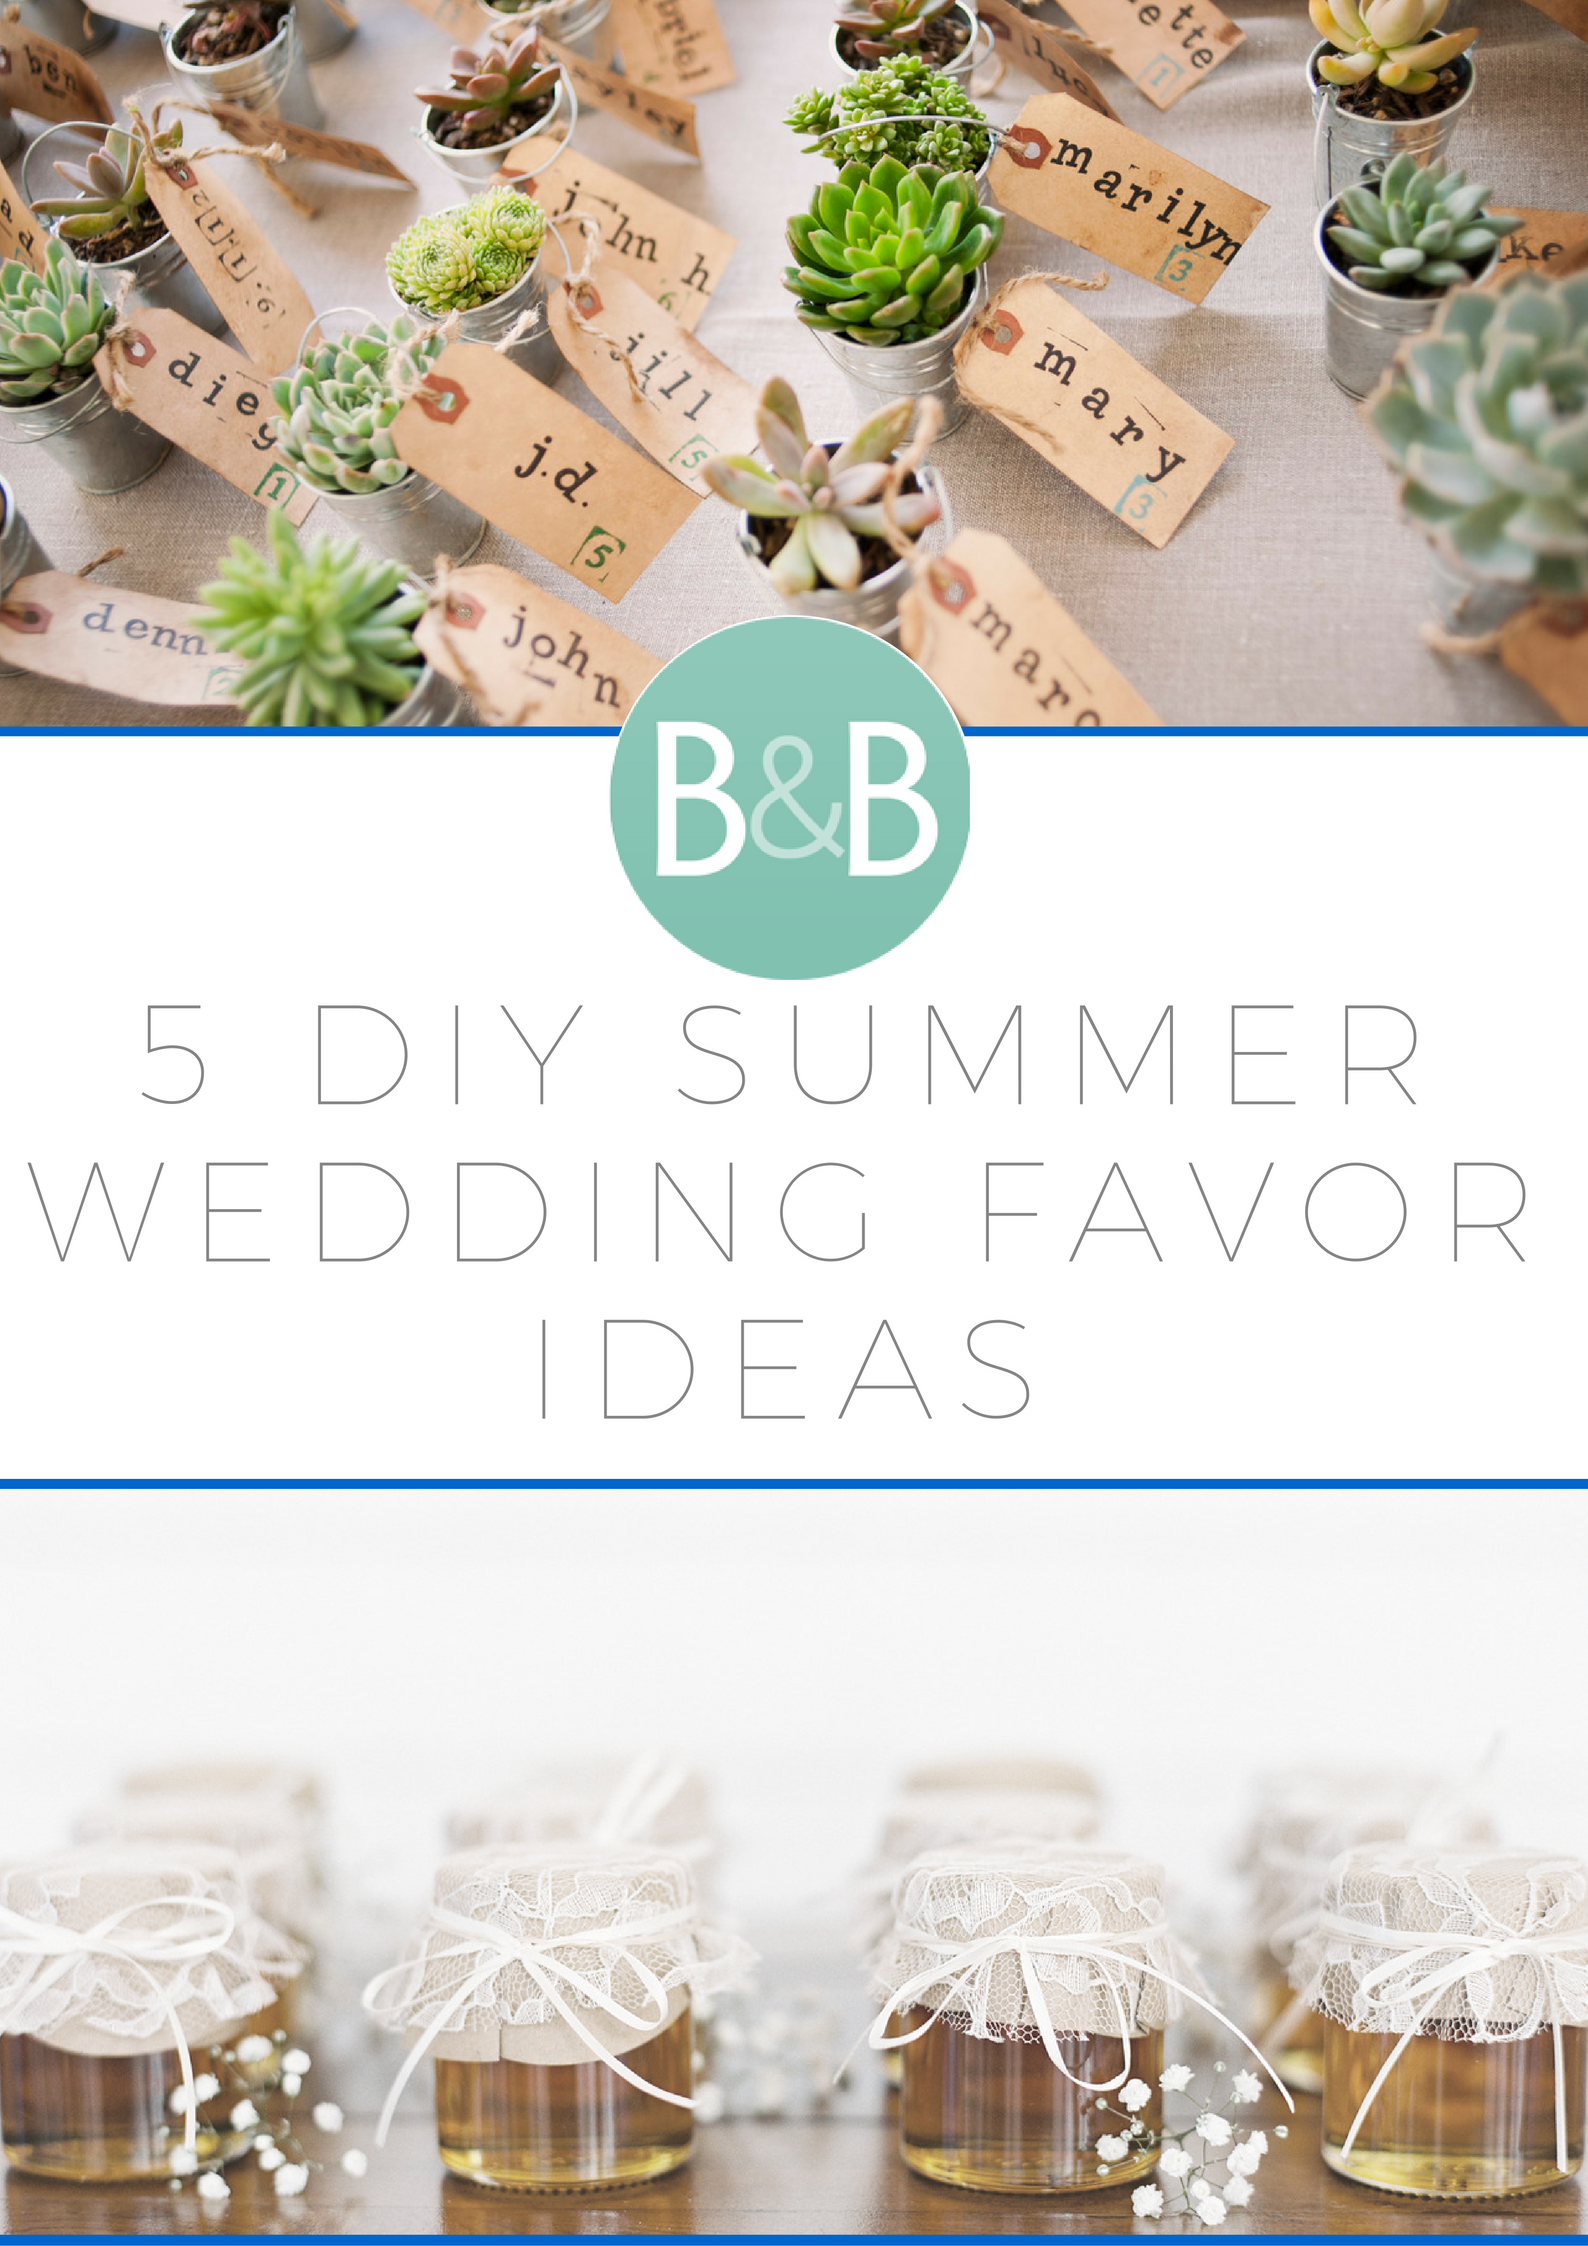 5 diy summer wedding favor ideas | diy summer weddings, summer